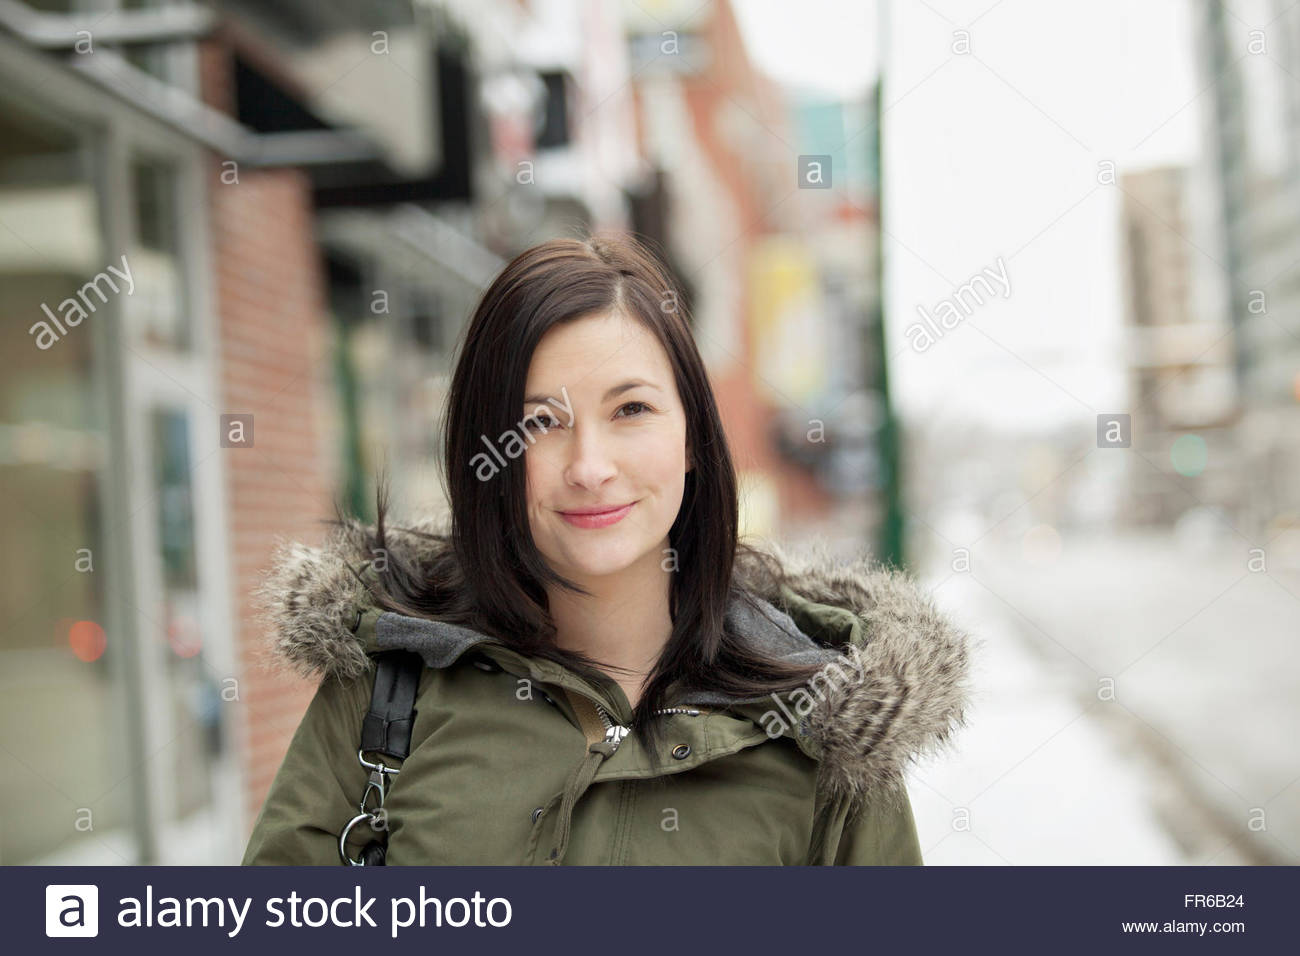 young woman out for a brisk walk - Stock Image